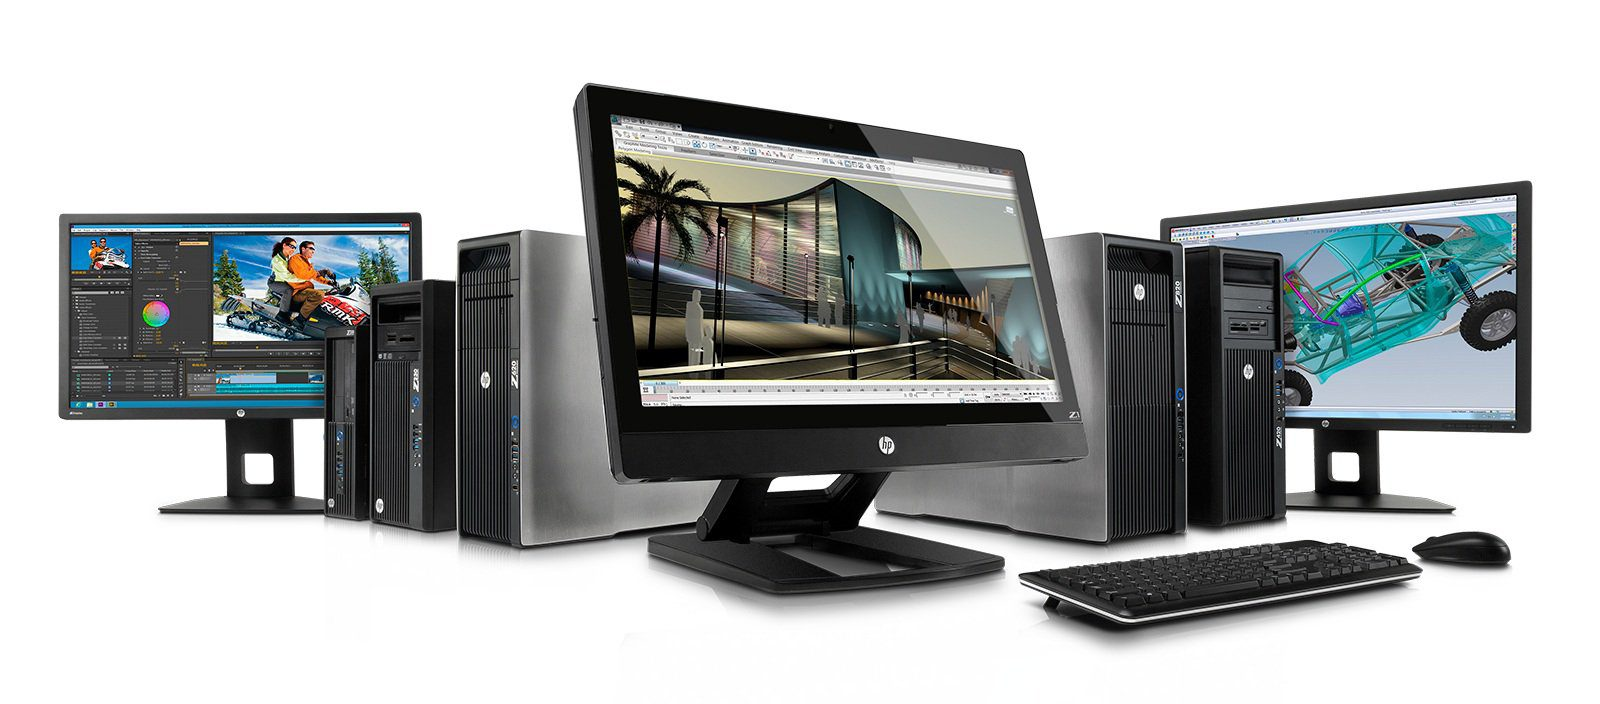 Z Series Workstation Family with Z27i IPS Display, Z30i IPS Display